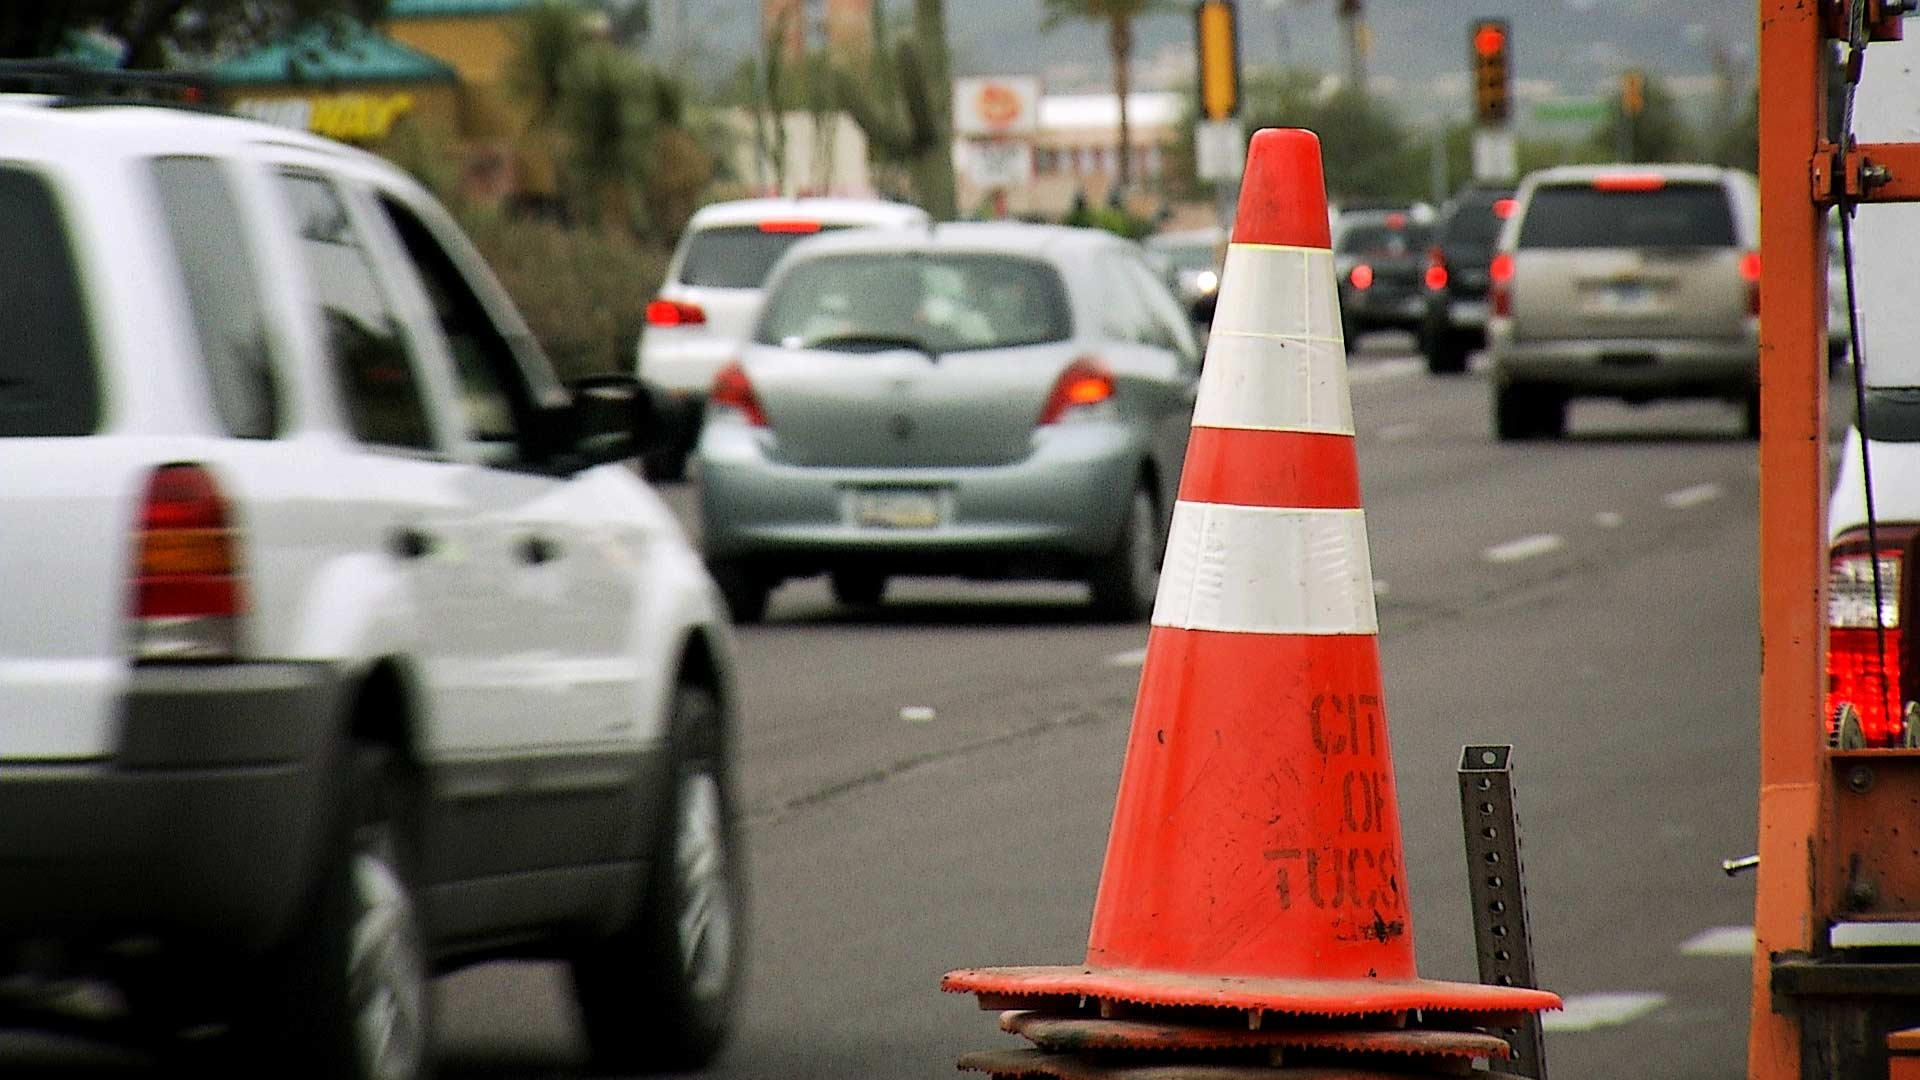 A traffic cone along Speedway Boulevard as traffic passes in the background.